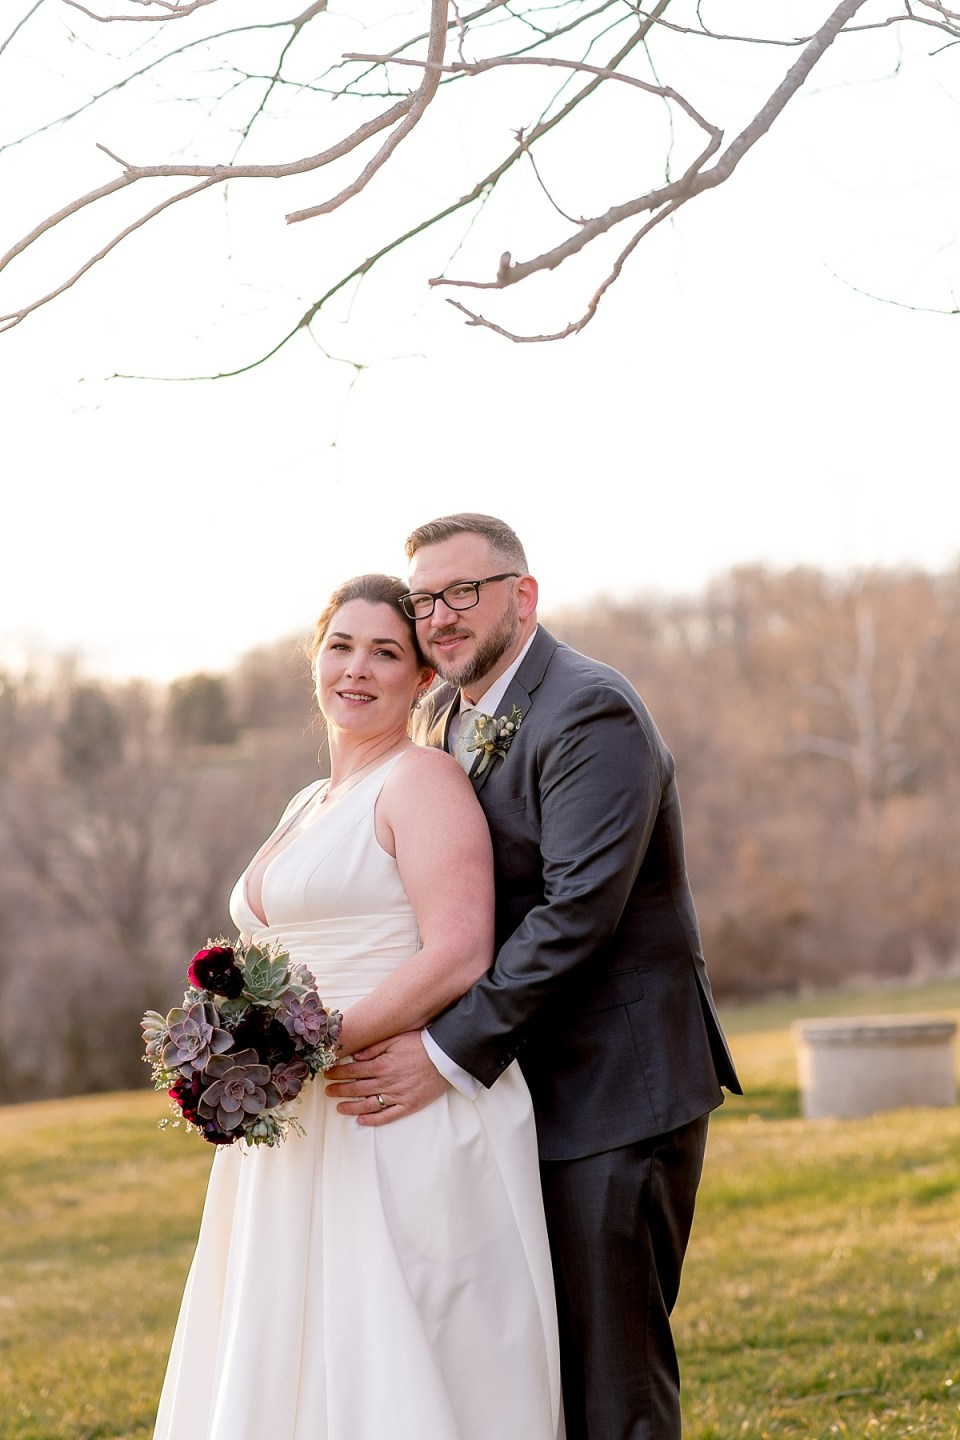 Middleburg Wedding Venue, Briar Patch Bed and Breakfast